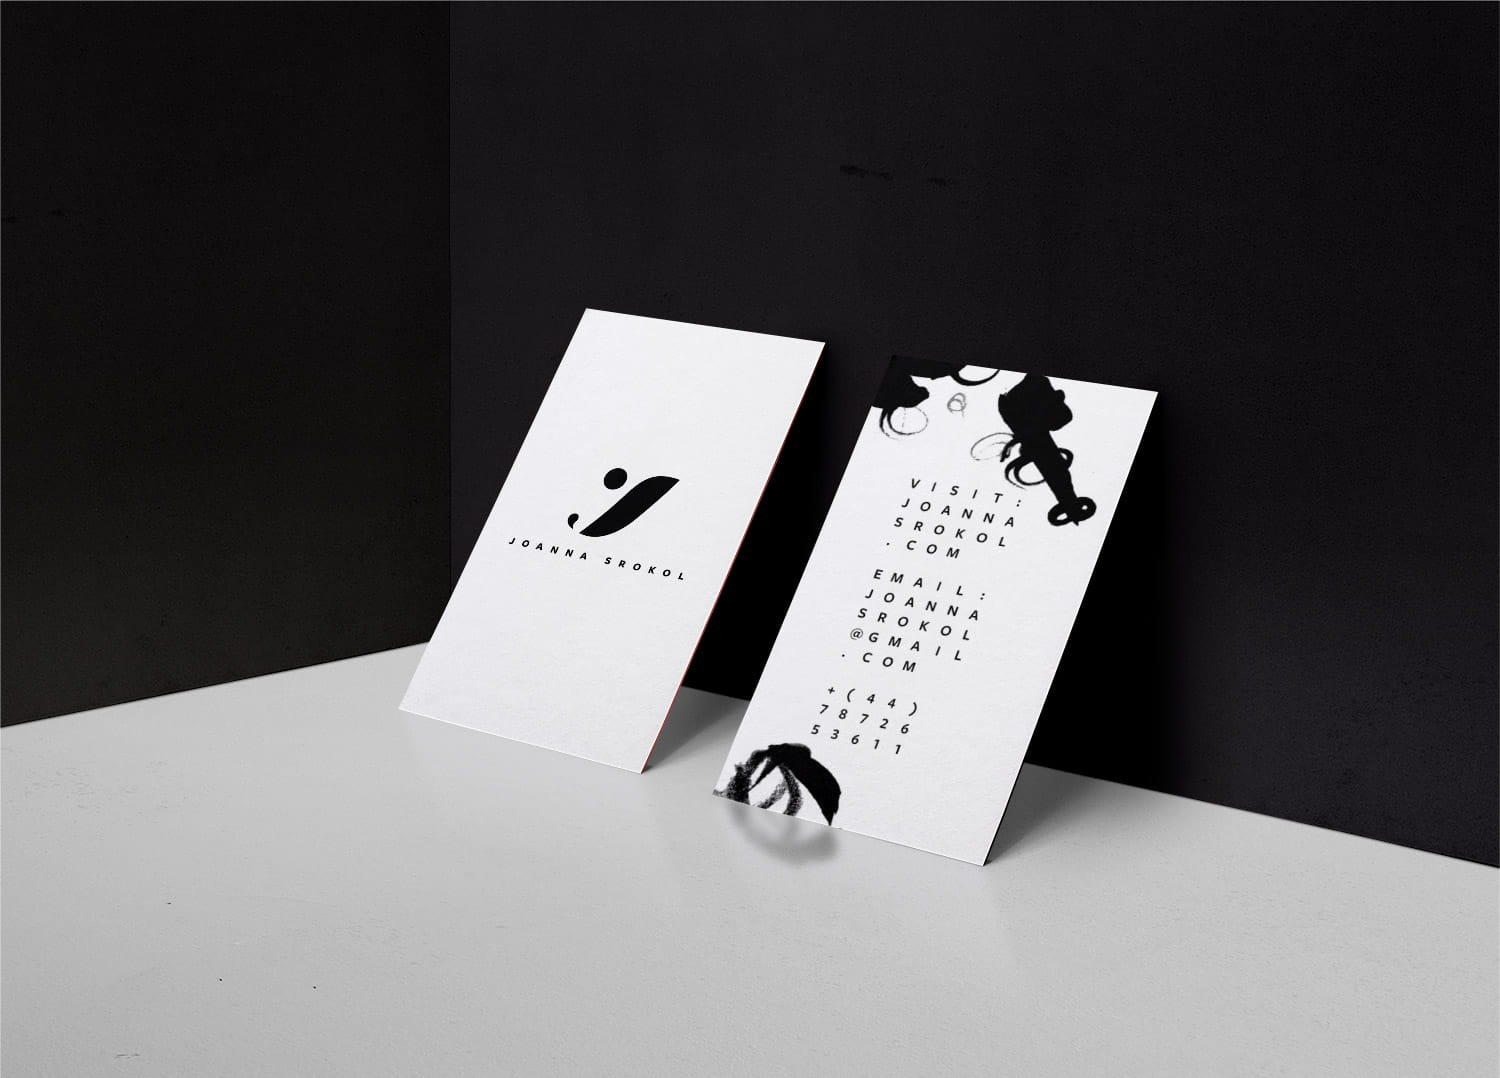 Joanna Srokol business cards